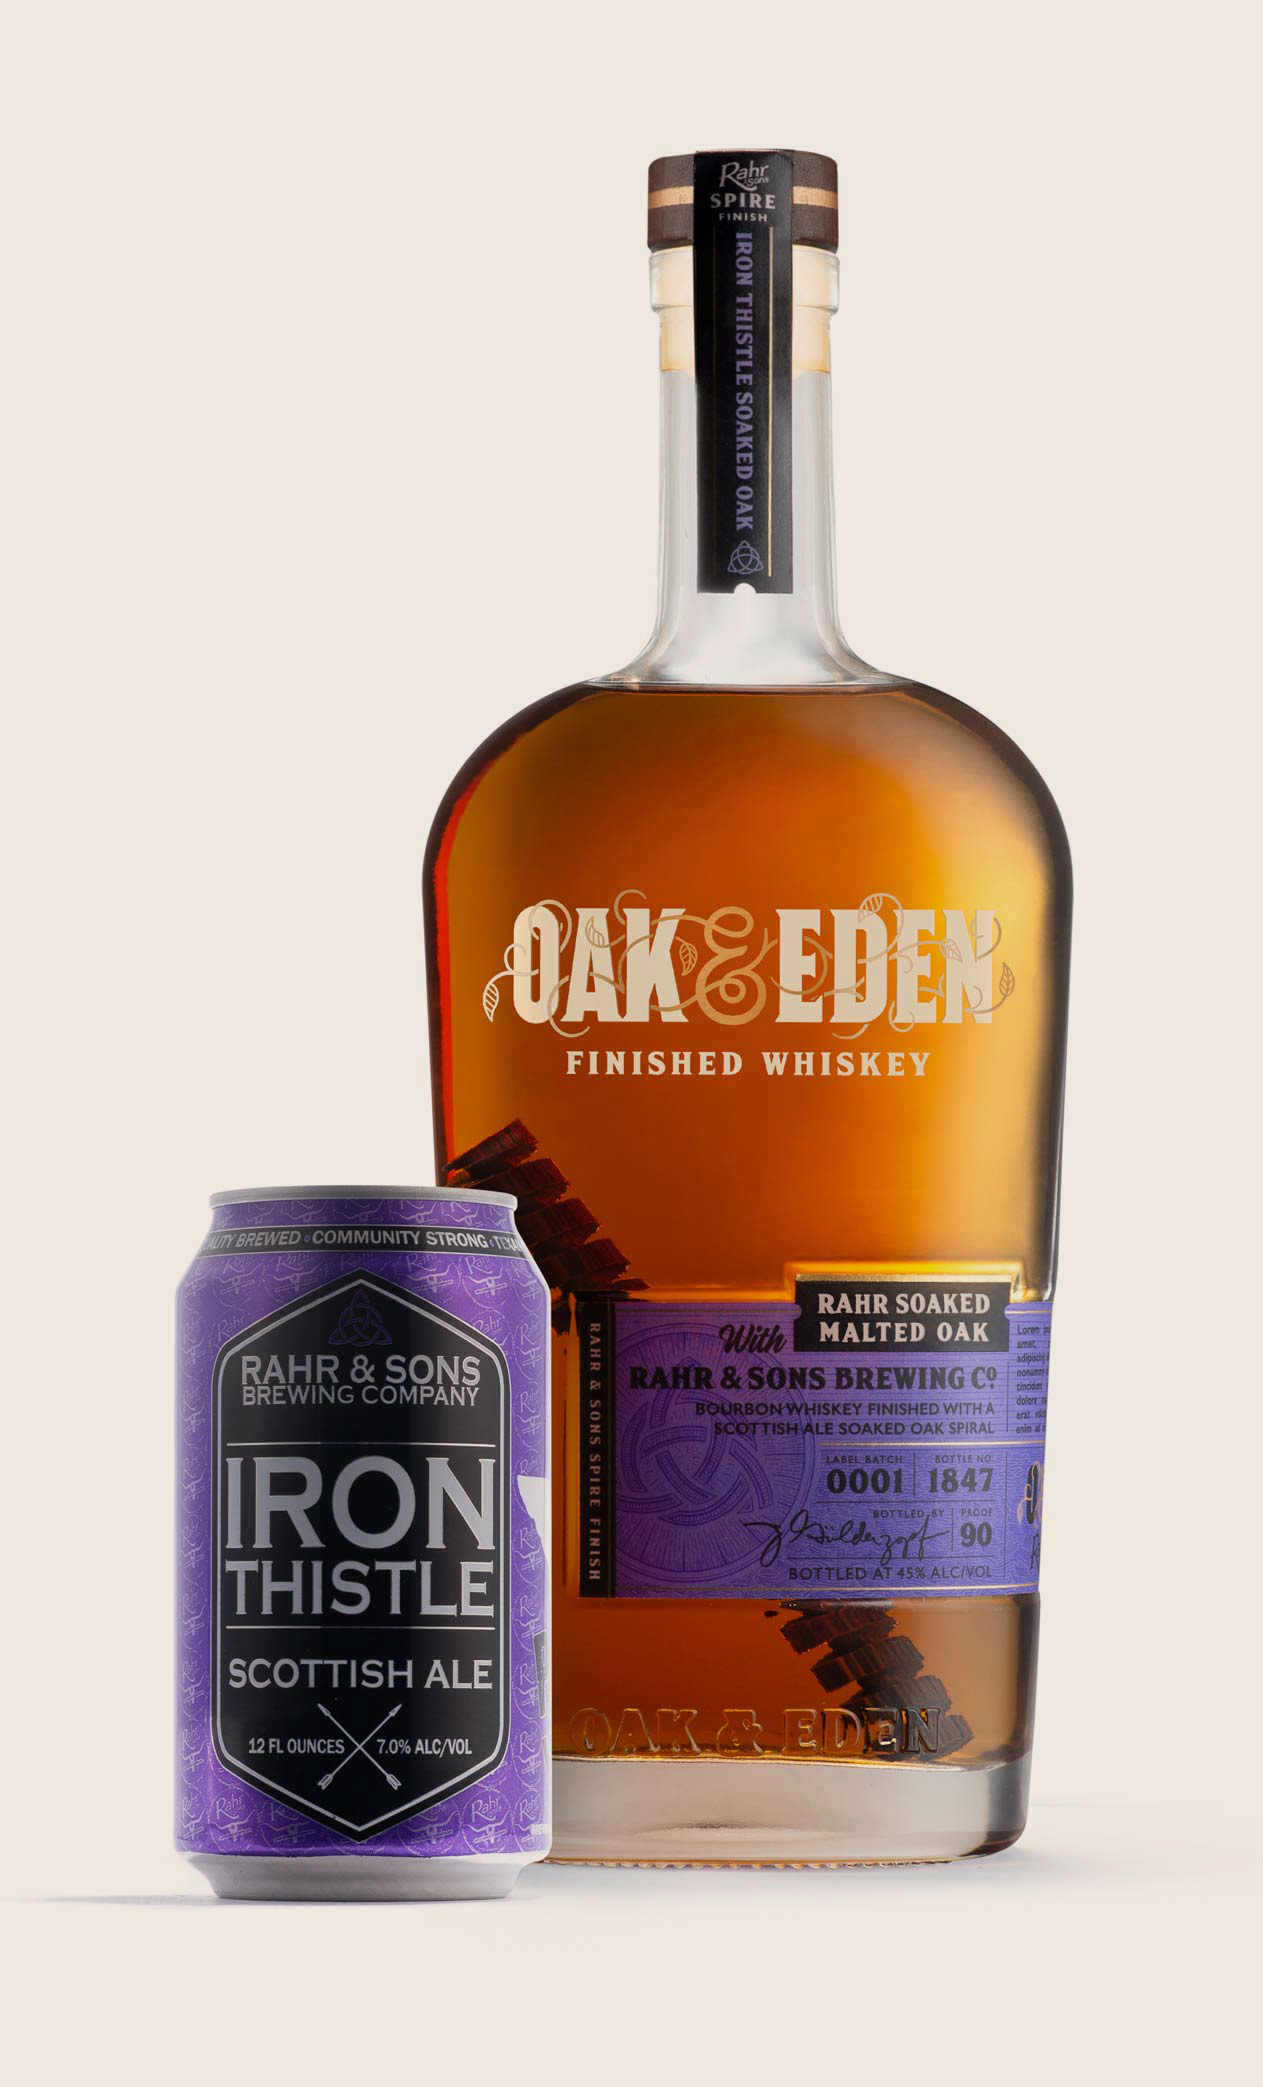 Oak & Eden Rahr & Sons Iron Thistle